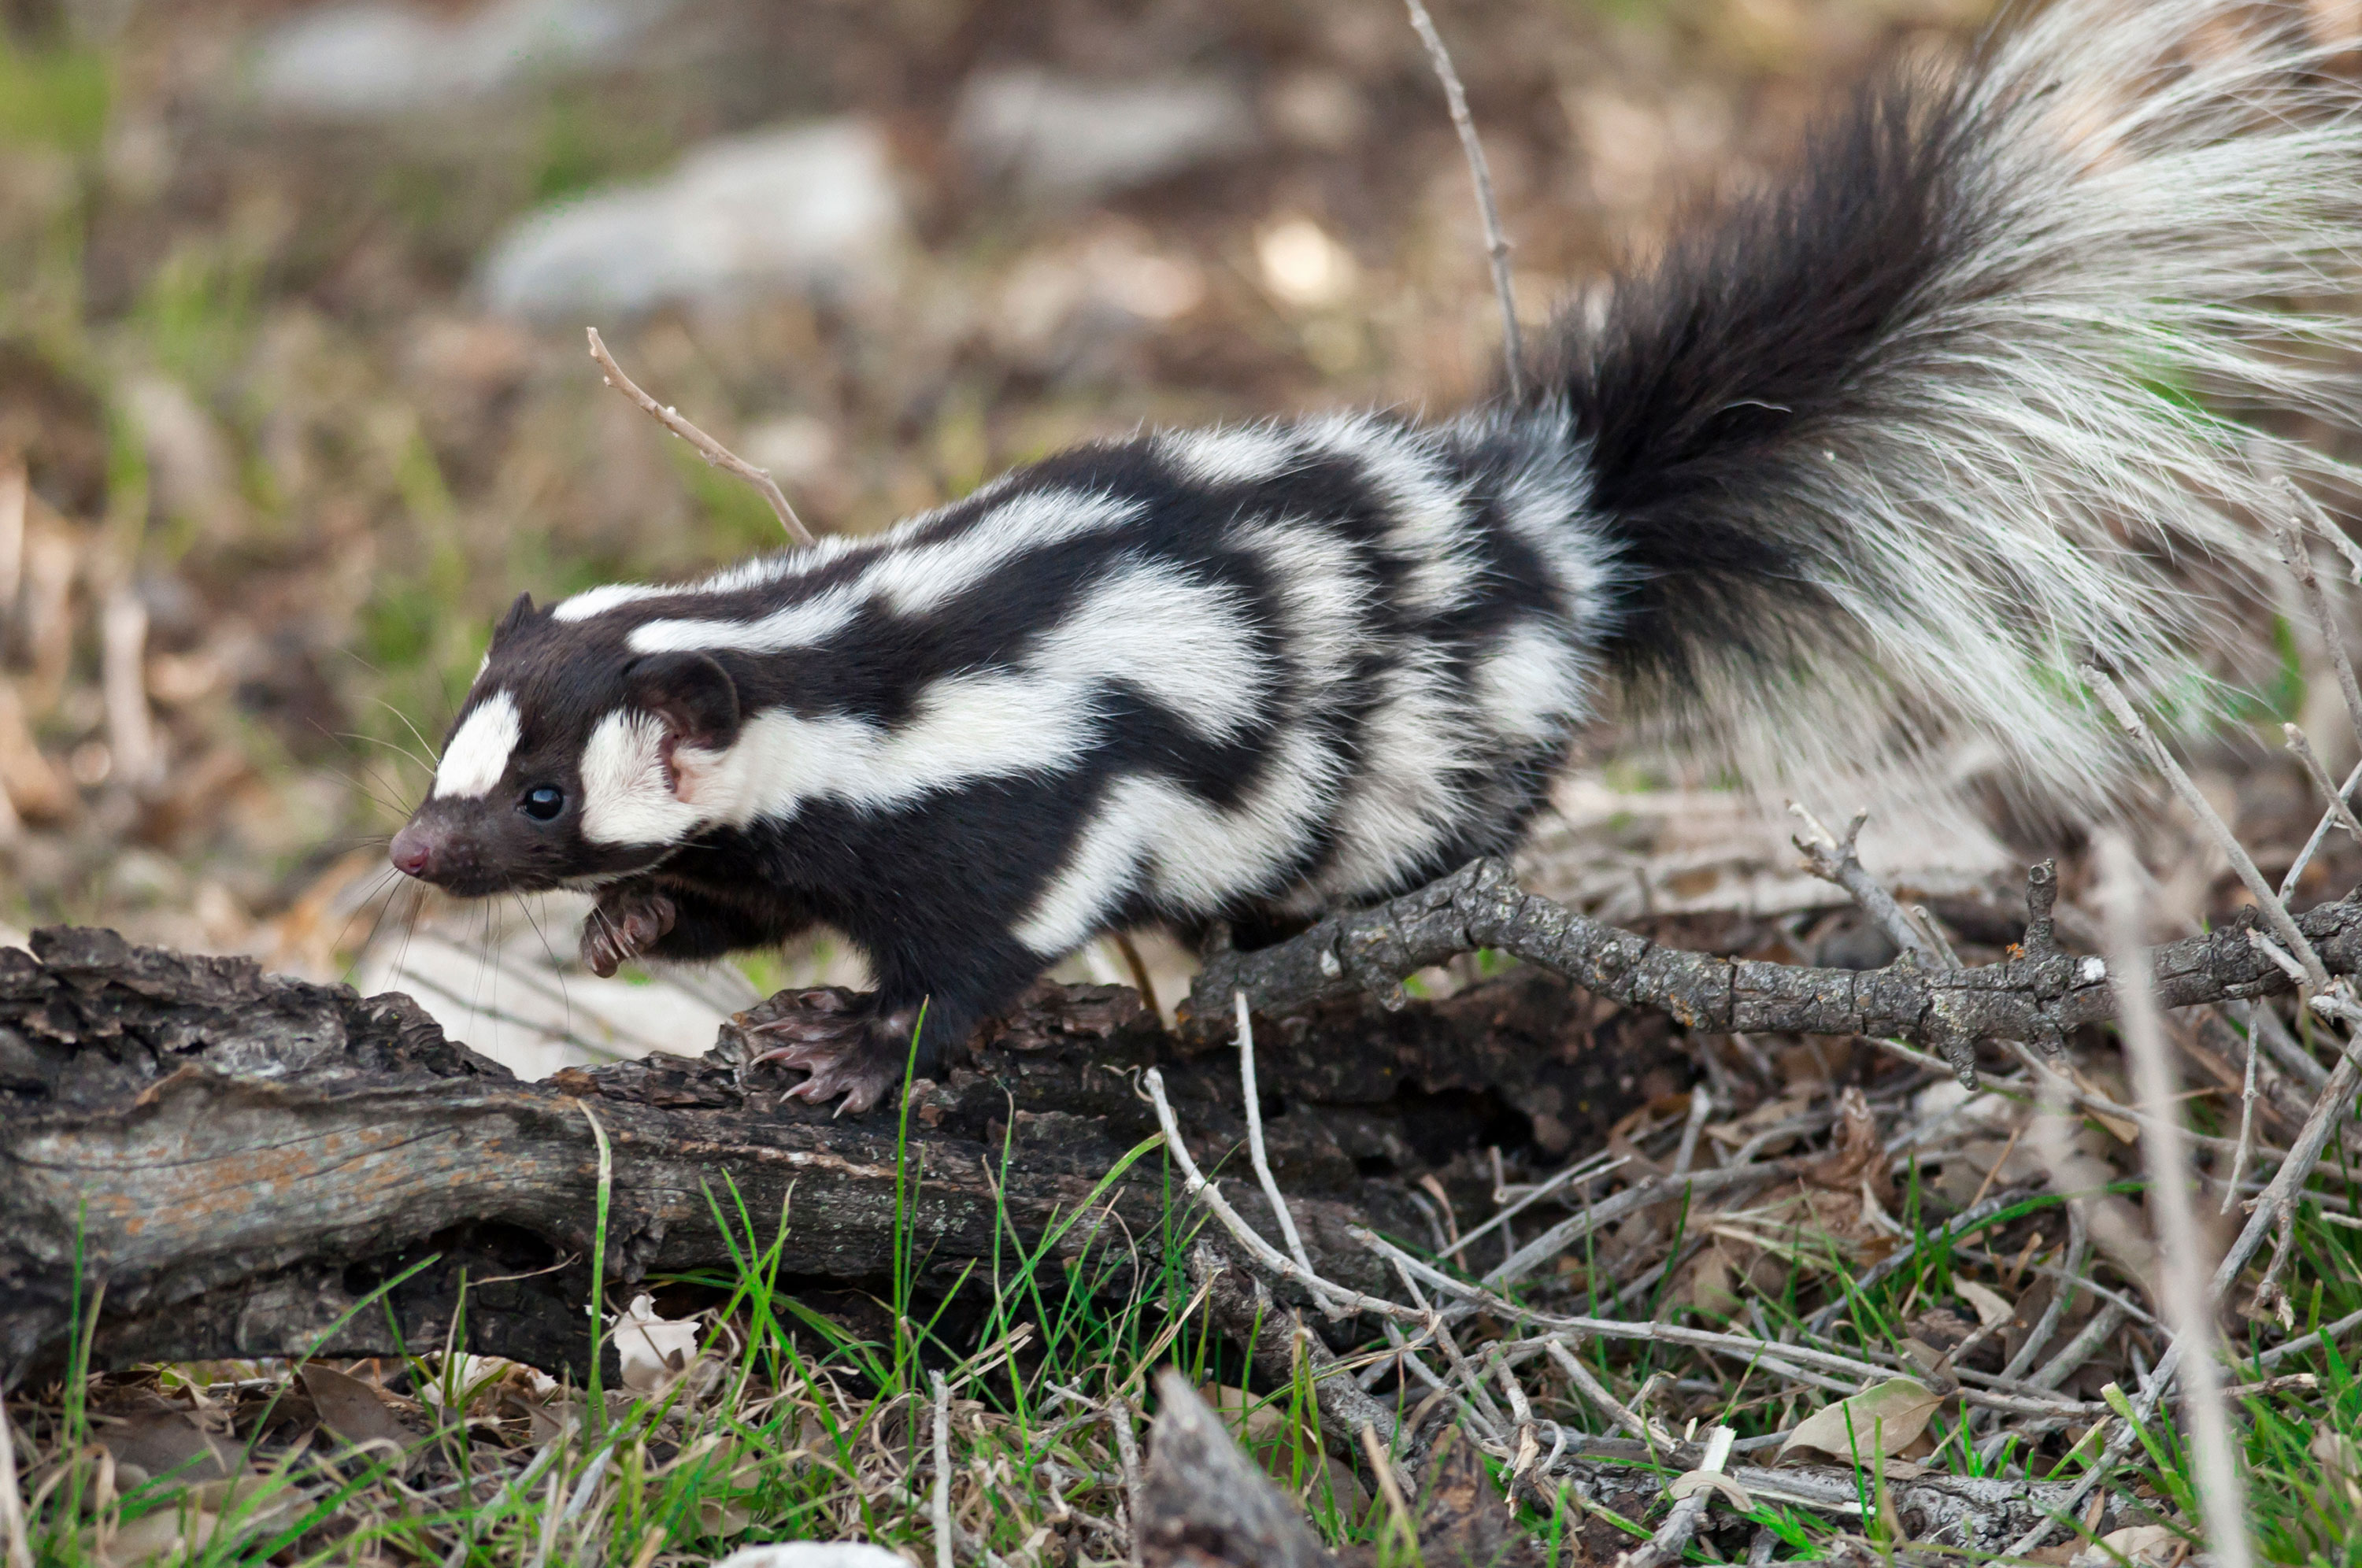 There are more spotted skunks than previously believed, according to new research.